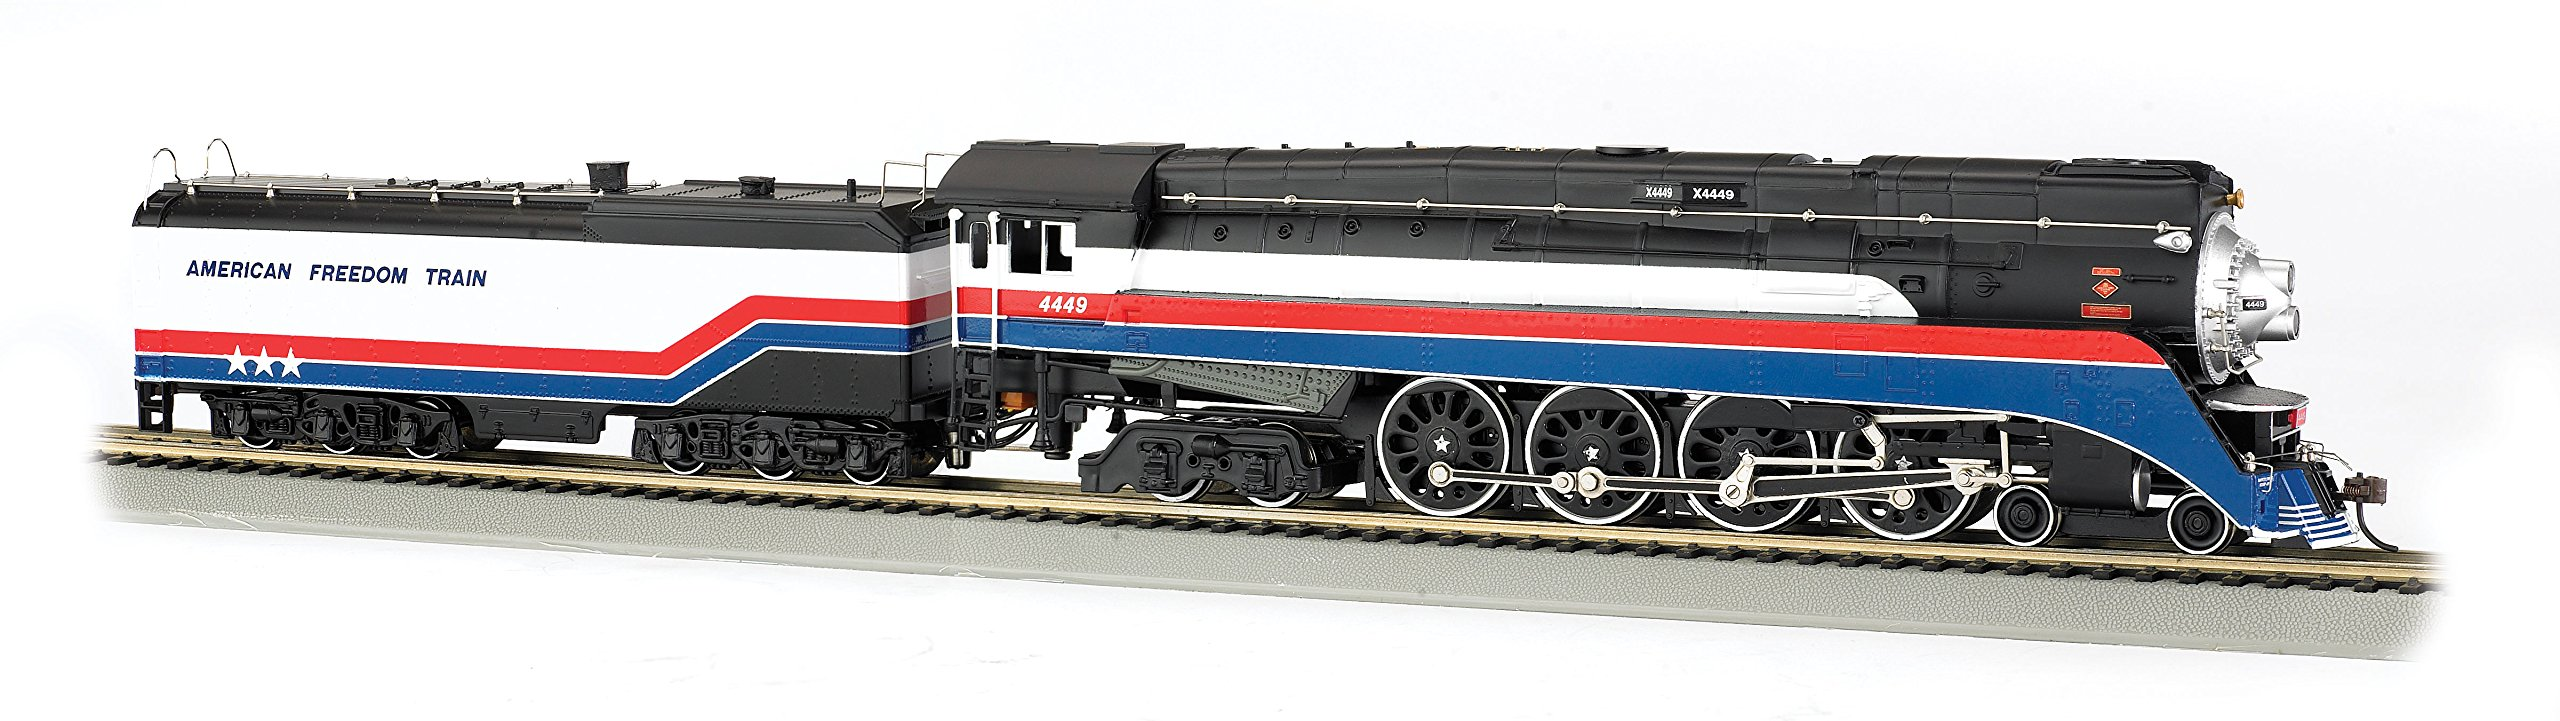 Bachmann Industries GS4 4-8-4 Locomotive - DCC Sound Value Equipped - American Freedom Train #4449 - HO-Scale Train